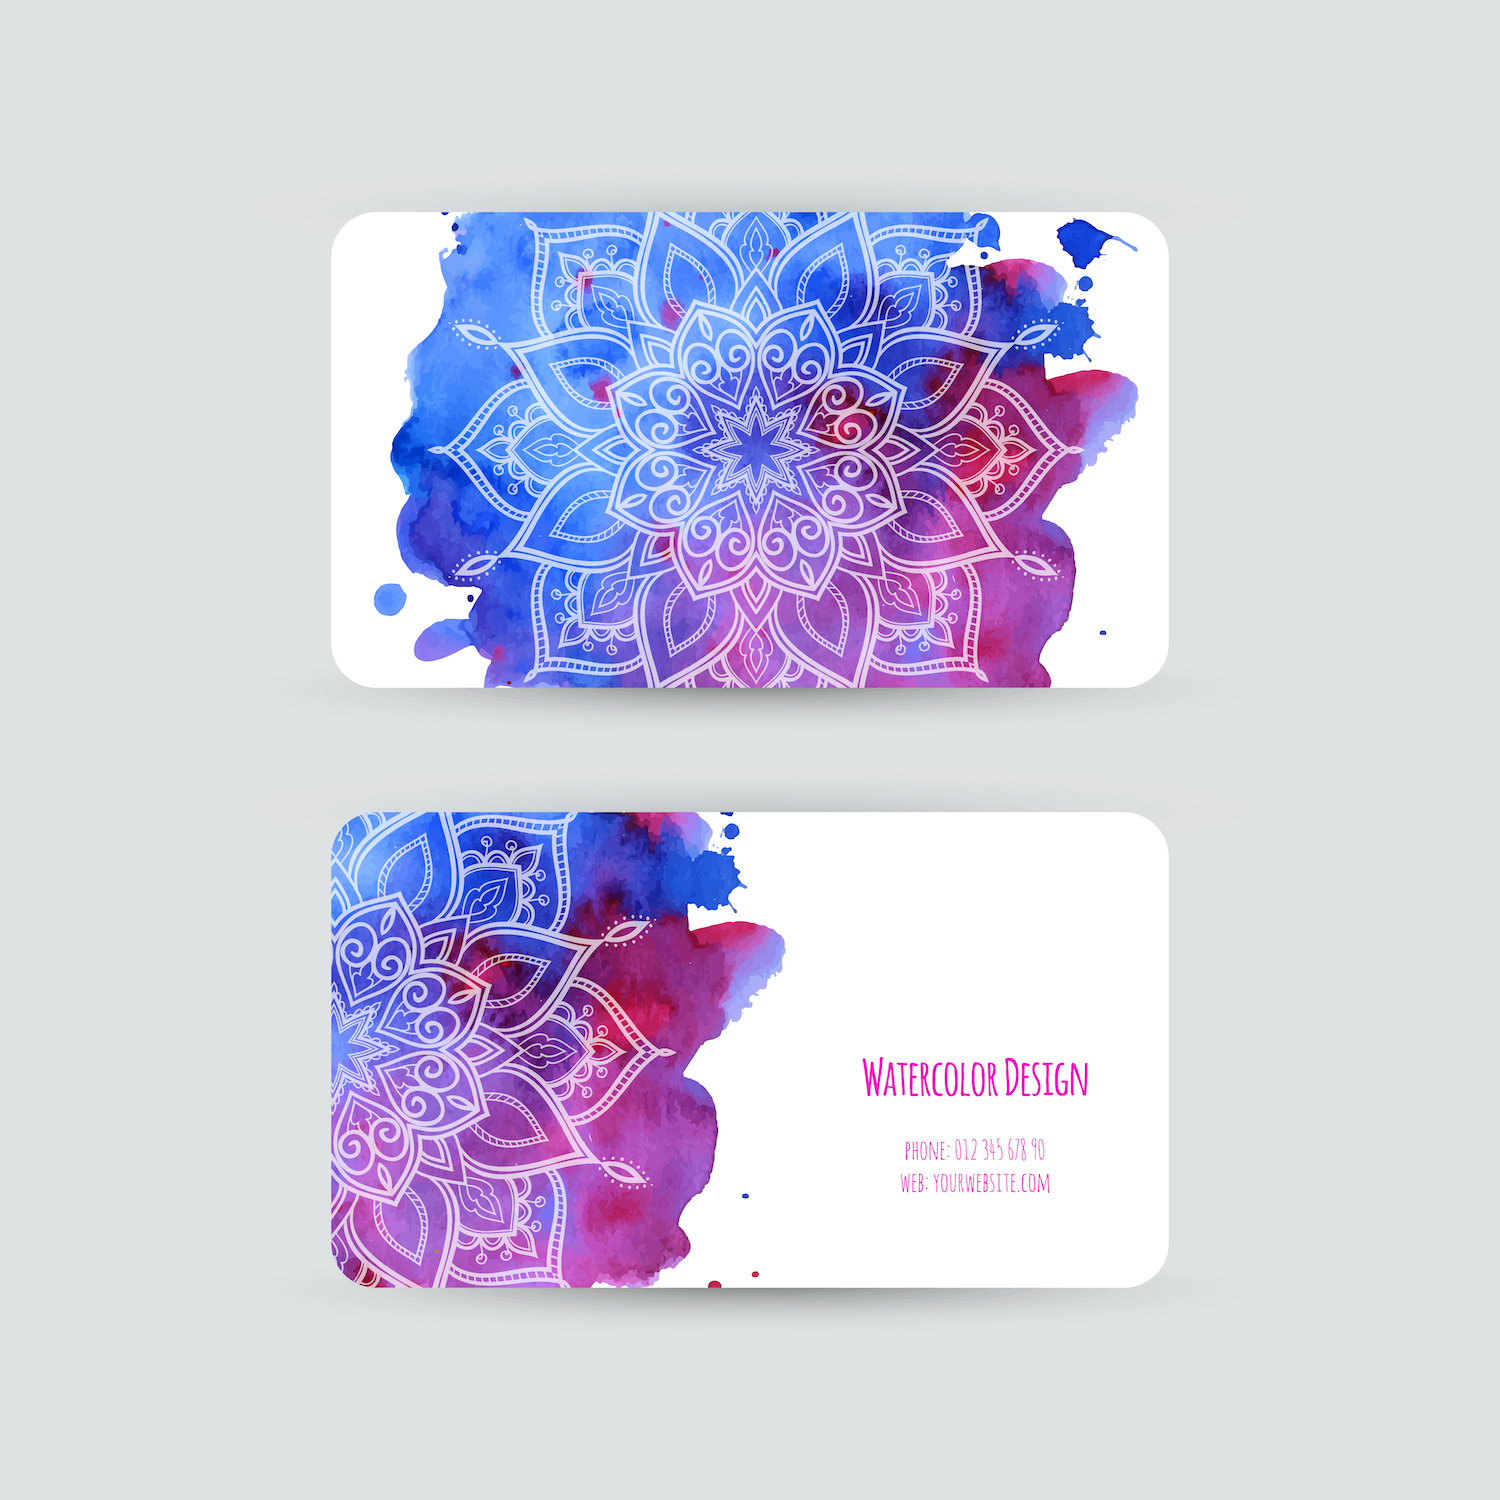 Fashion Business Card Design Branding Los Angeles